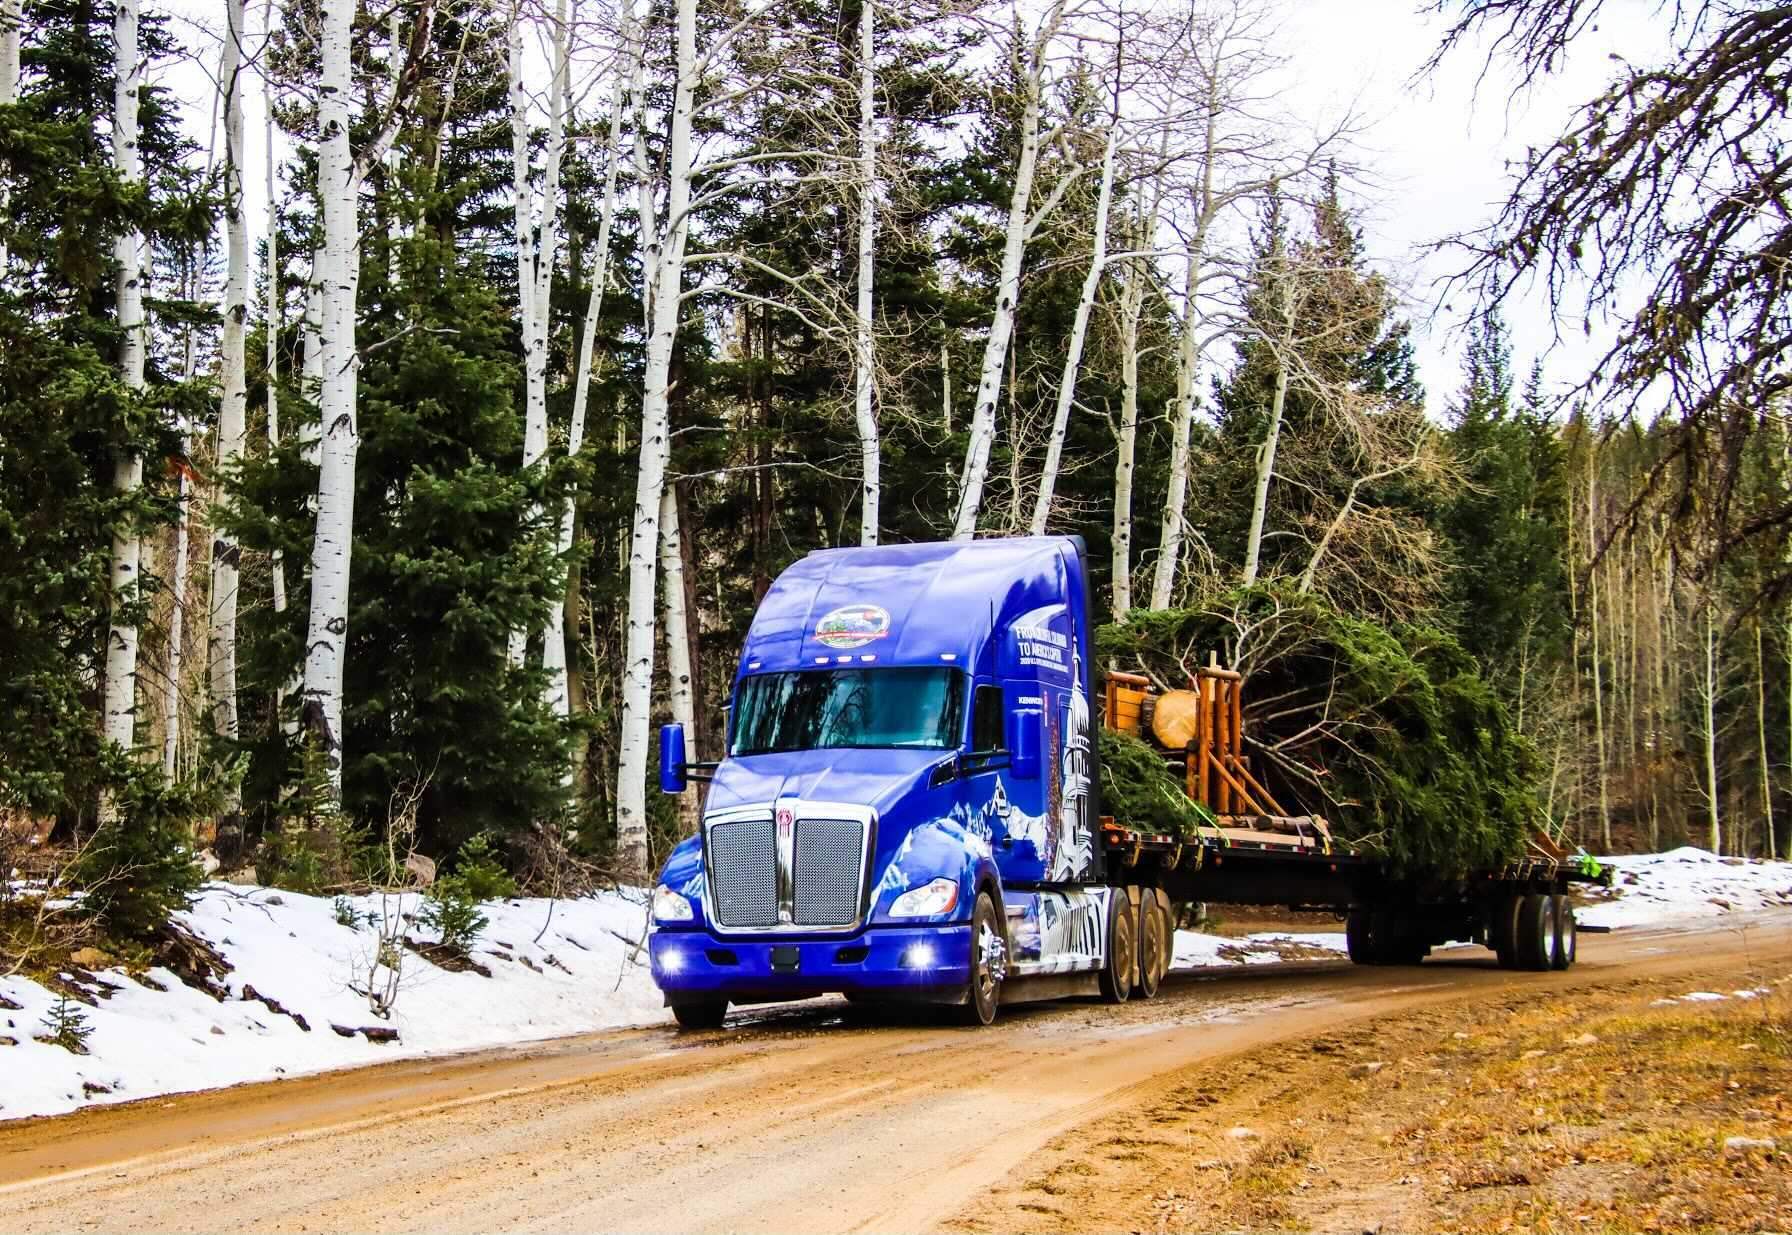 This year's Capitol Christmas Tree comes from outside of Montrose, in the Grand Mesa, Uncompahgre and Gunnison National Forests. It will travel through Colorado through Sunday before heading to Washington, D.C.